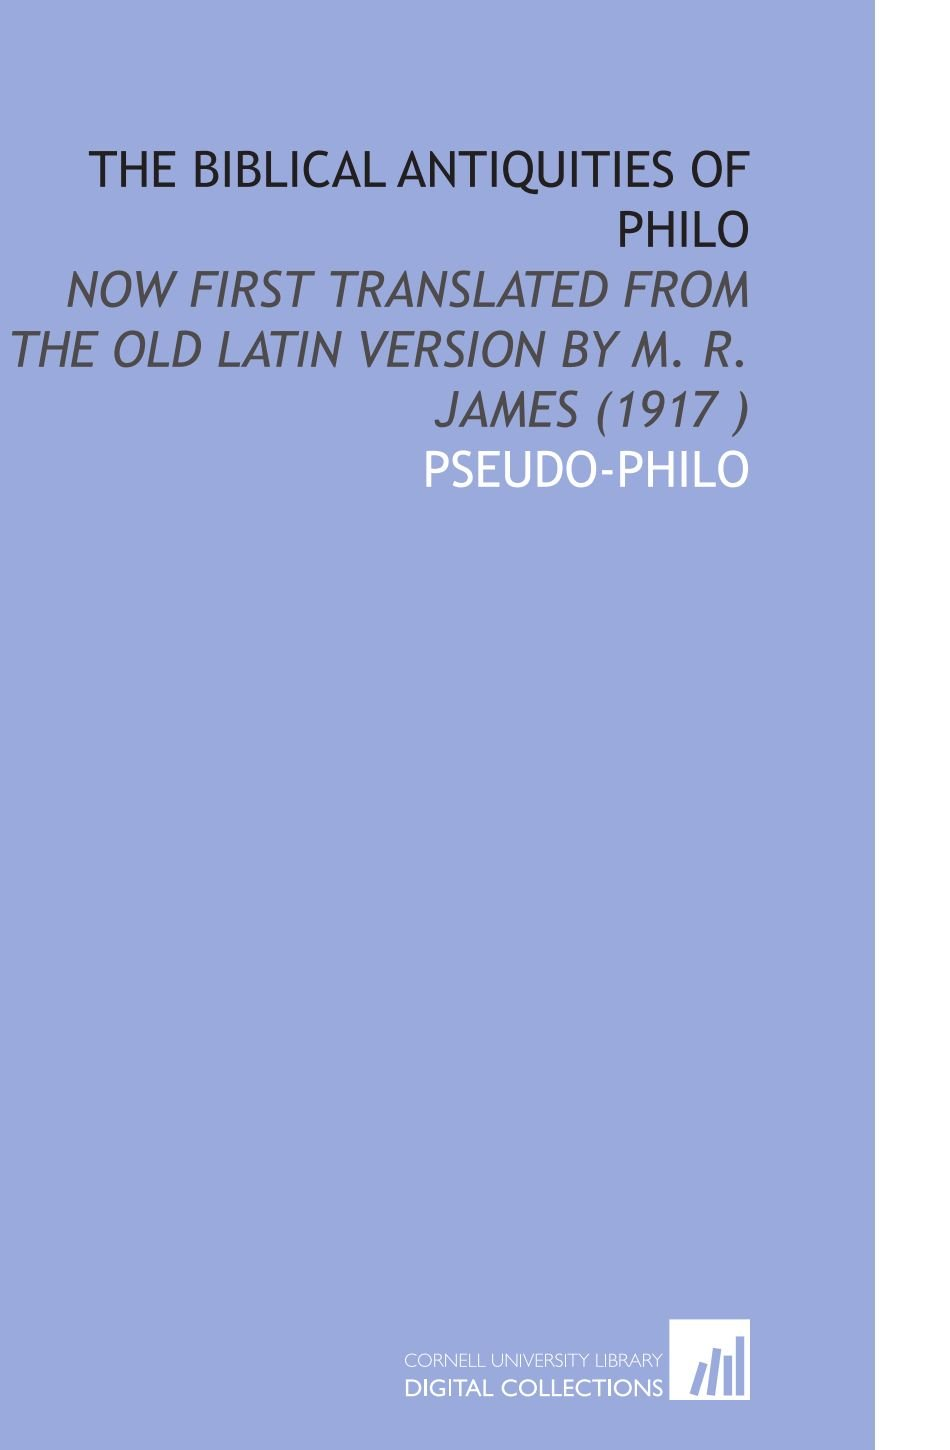 Download The Biblical Antiquities of Philo: Now First Translated From the Old Latin Version by M. R. James (1917 ) pdf epub